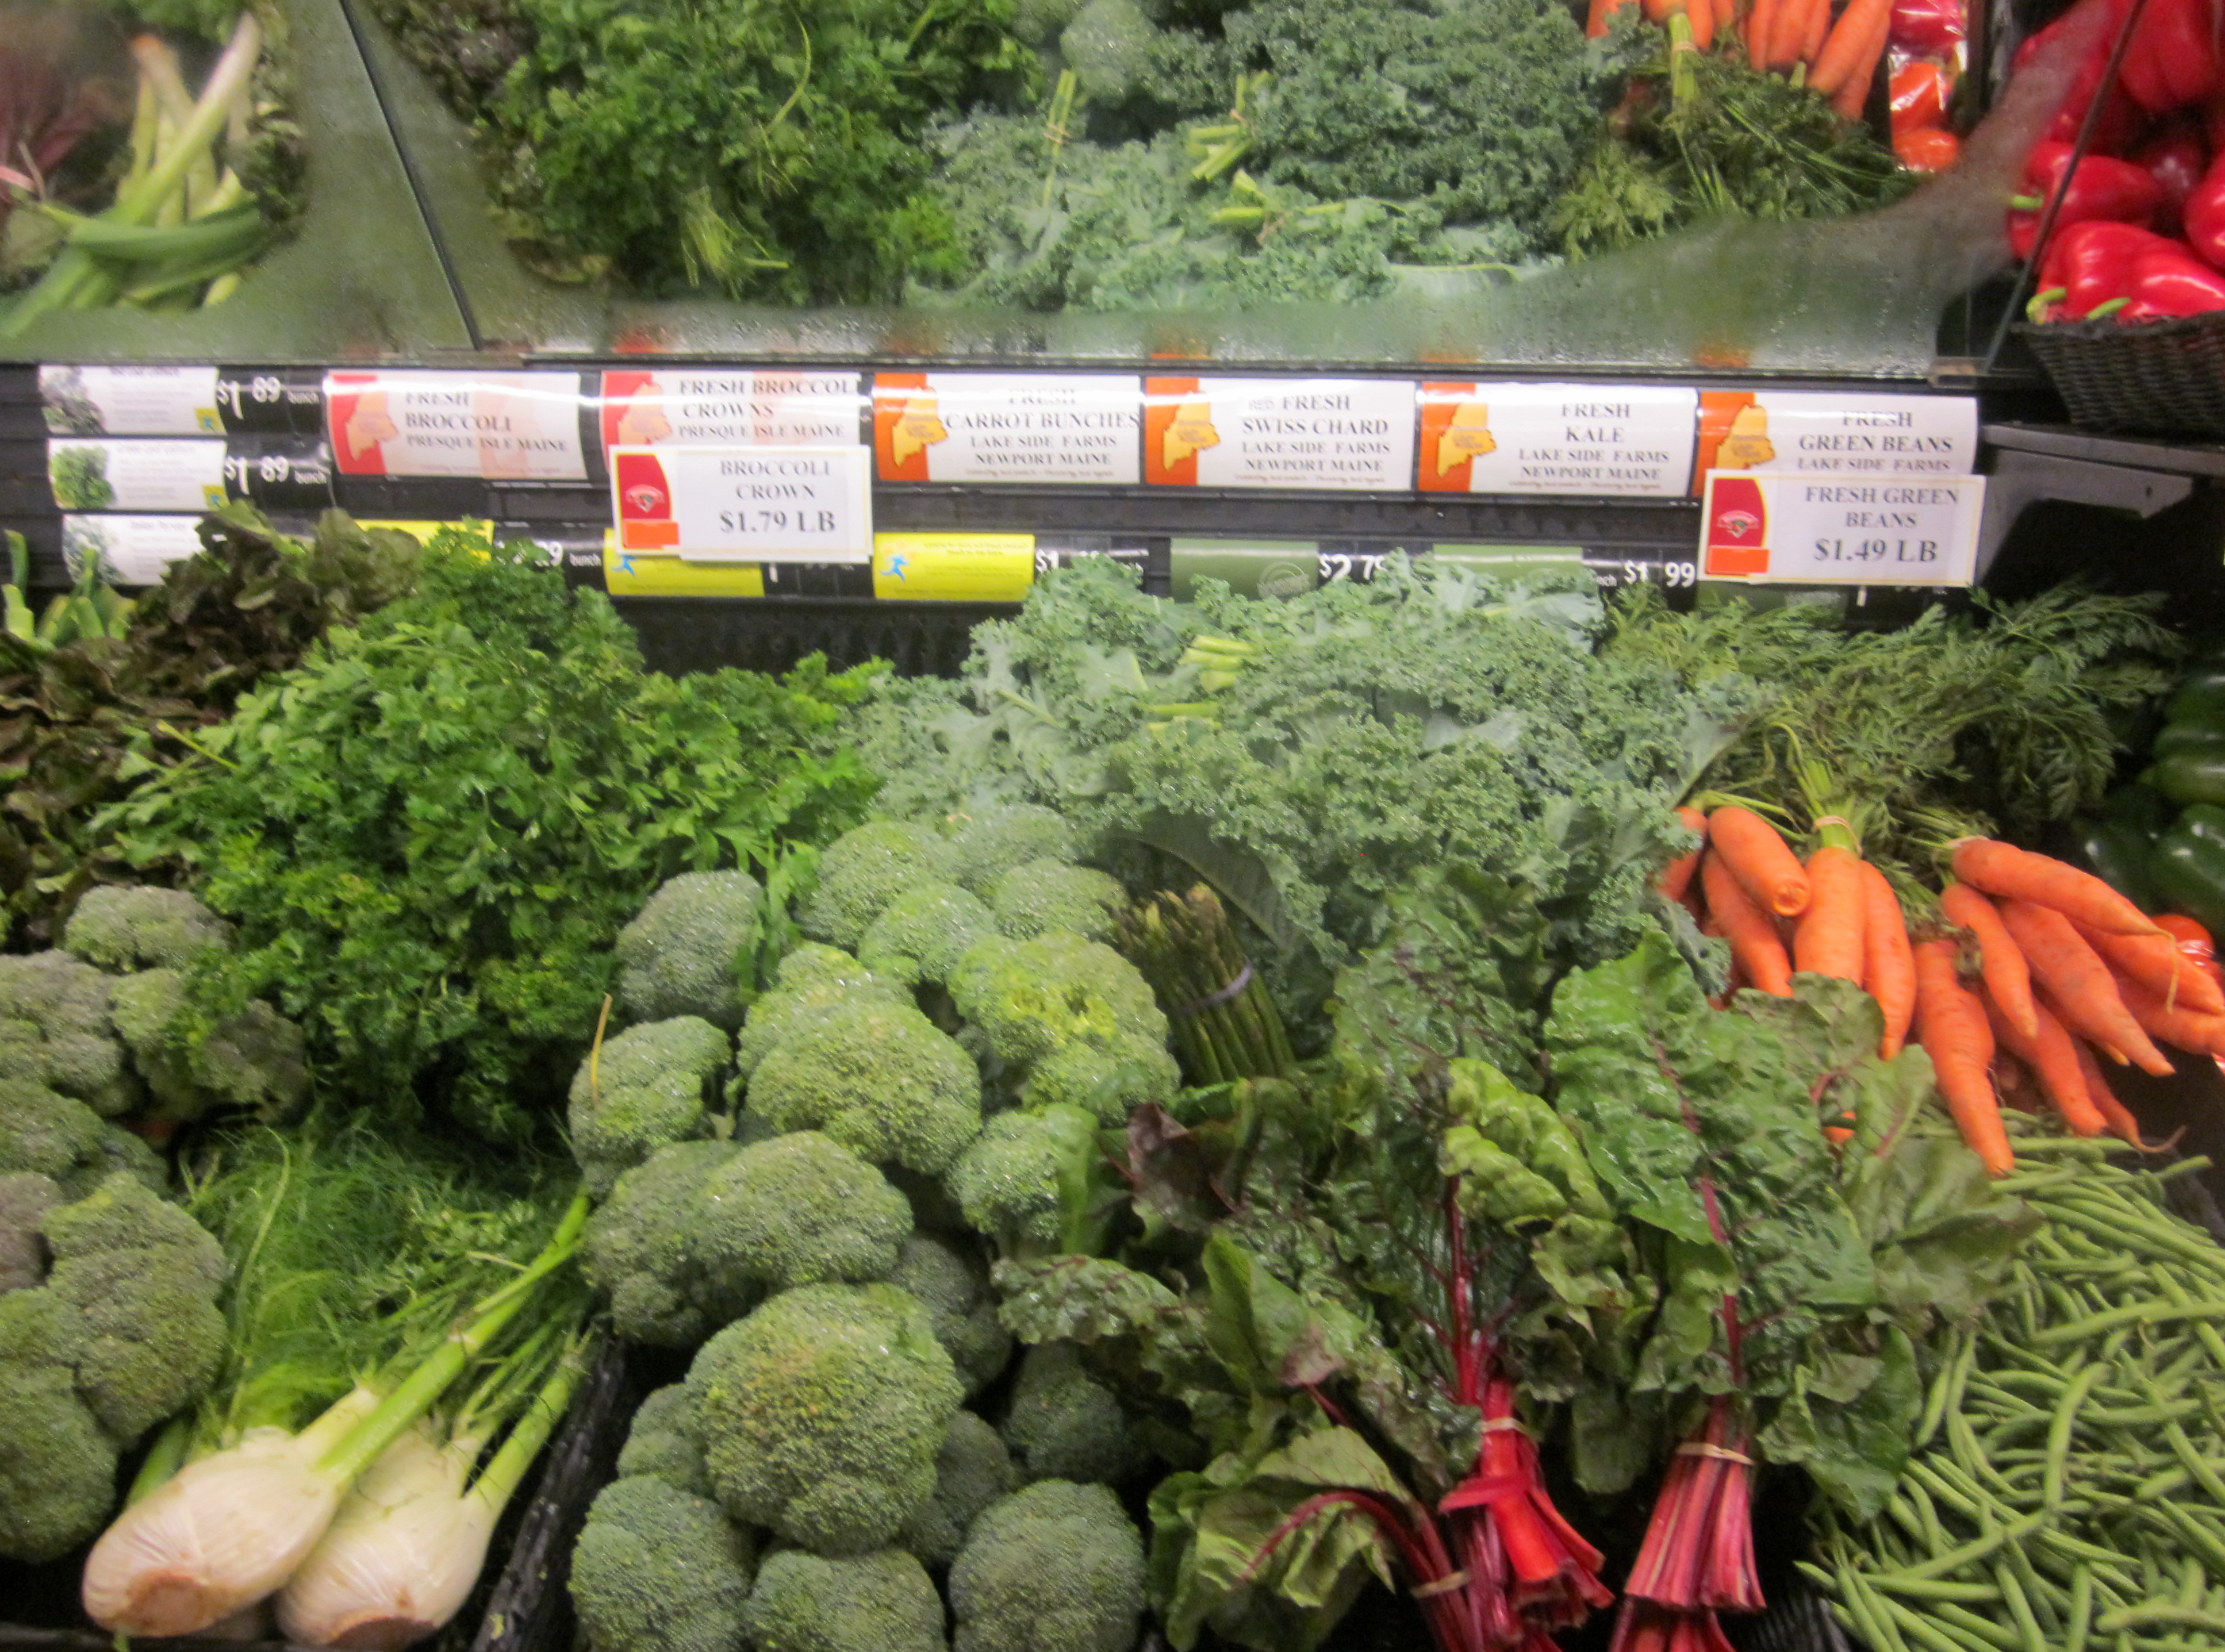 Health Benefits Of Buying Locally Grown Food